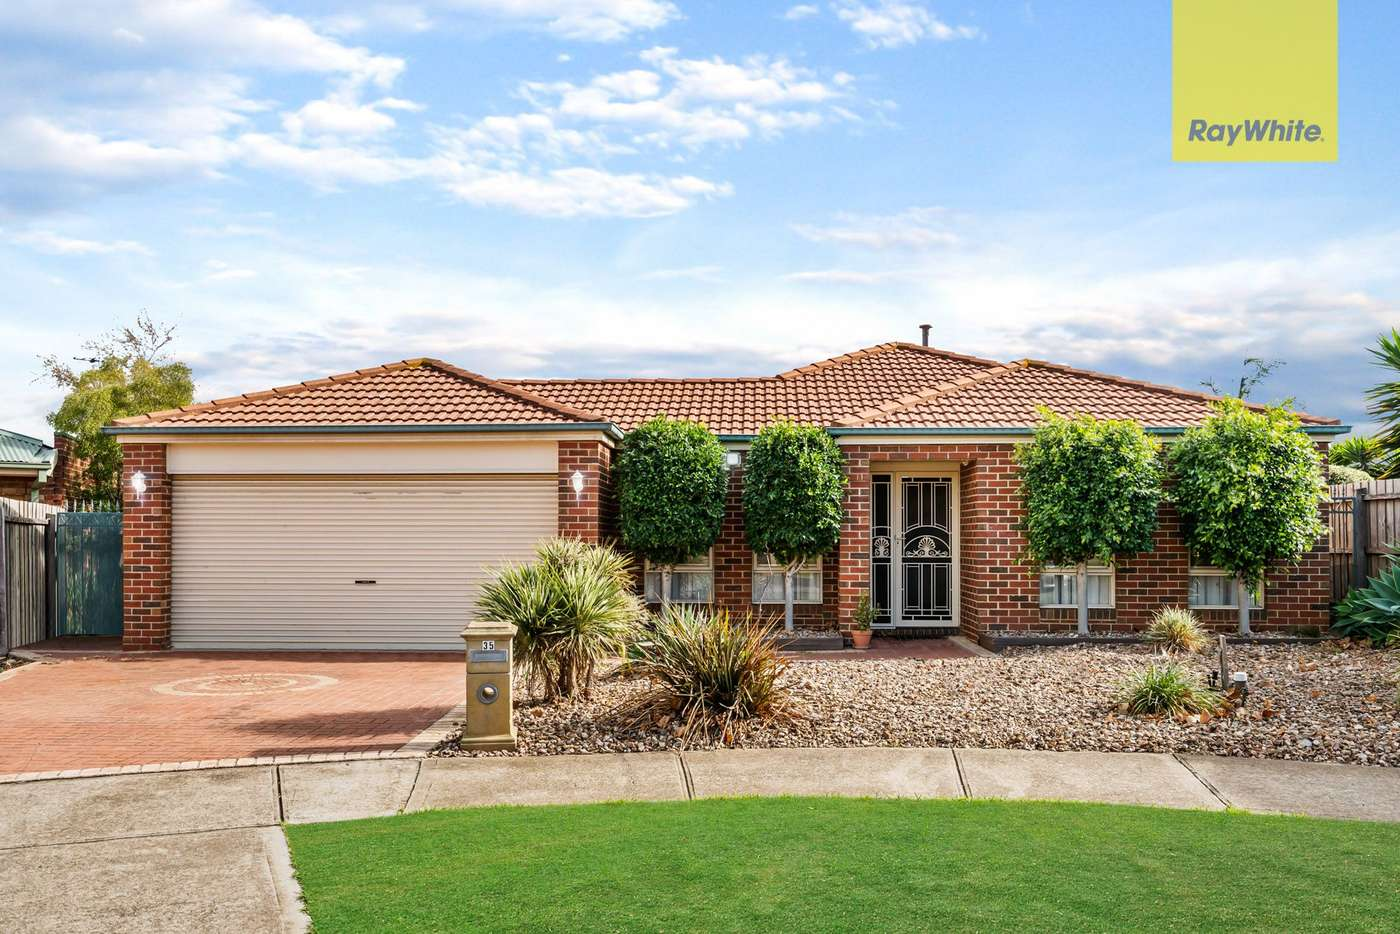 Main view of Homely house listing, 35 Perceval Crescent, Taylors Lakes VIC 3038